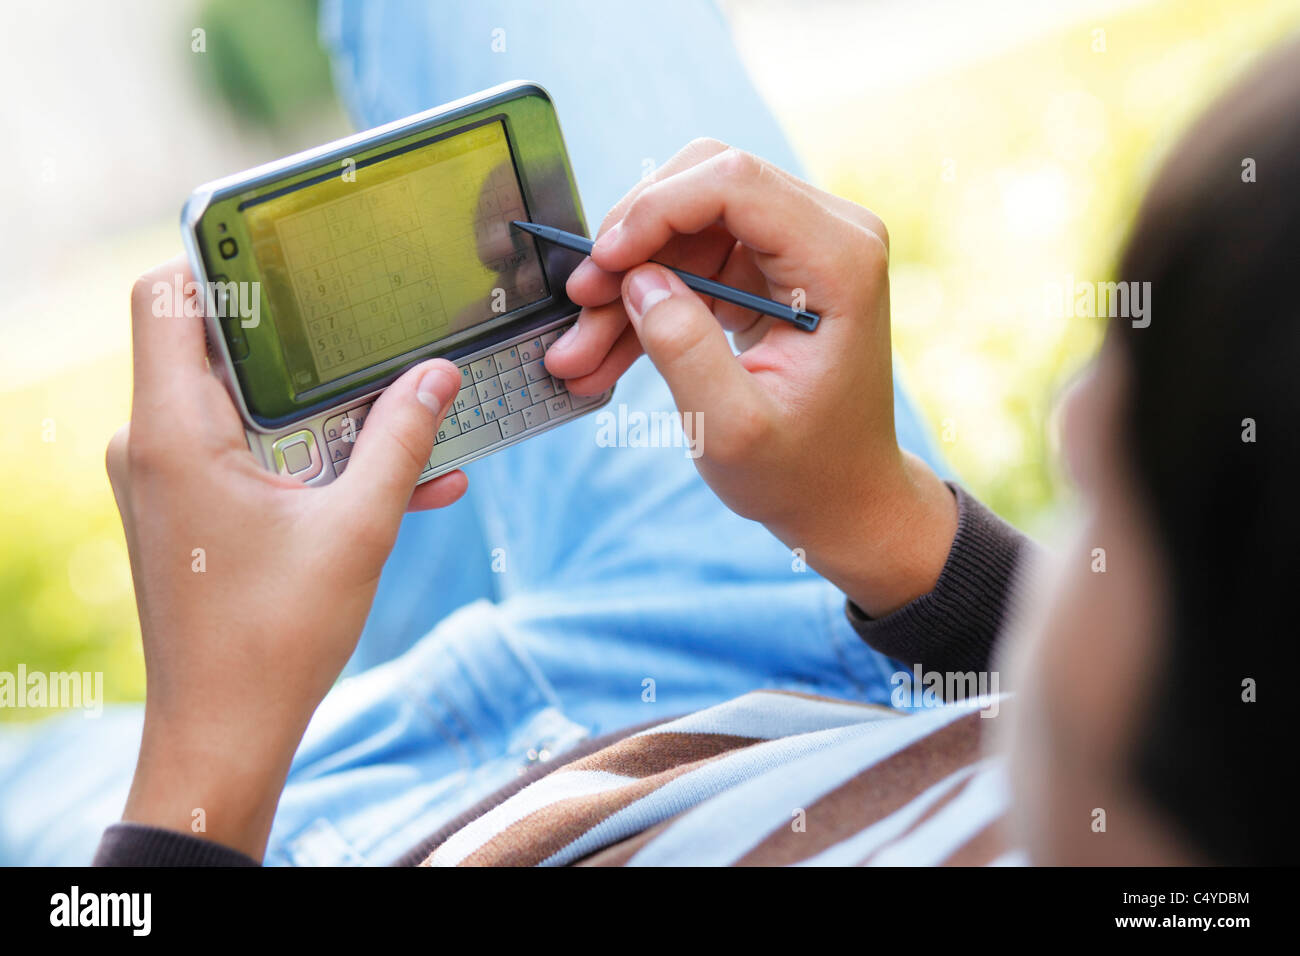 Male hand with digitized pen, touching the screen of a PDA. - Stock Image